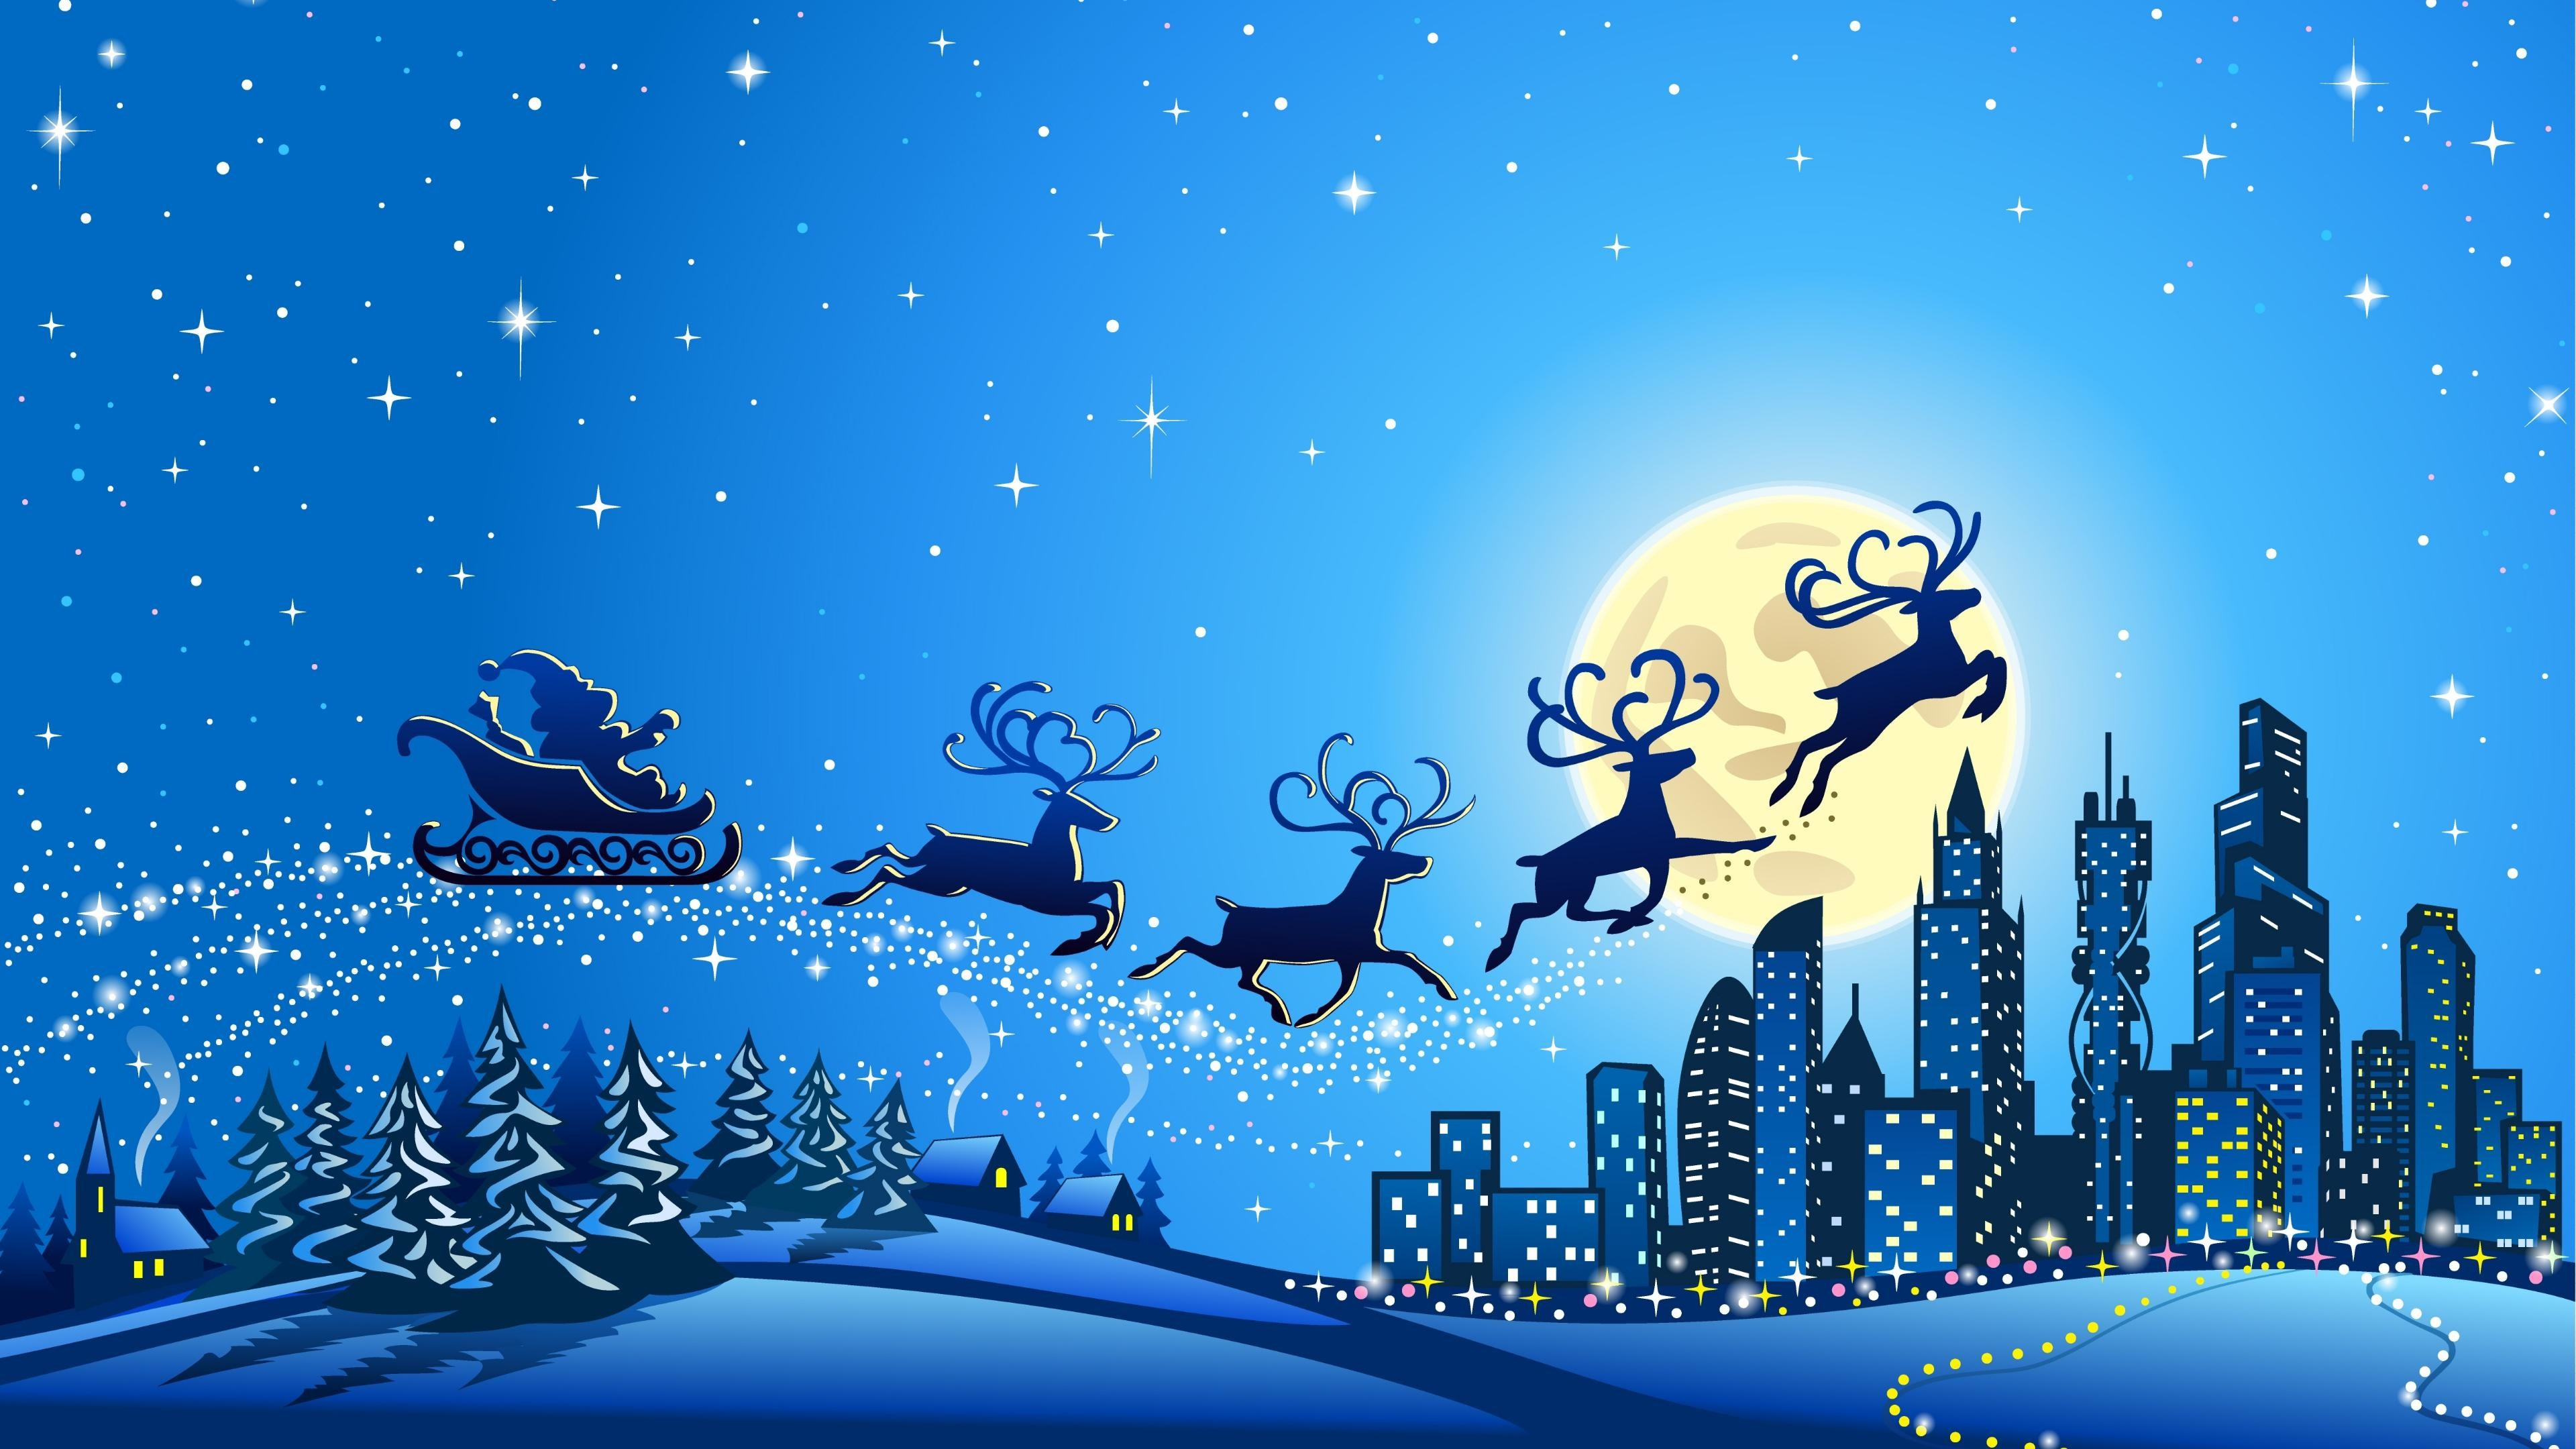 Res: 3840x2160, Merry Christmas Wallpapers Desktop Background